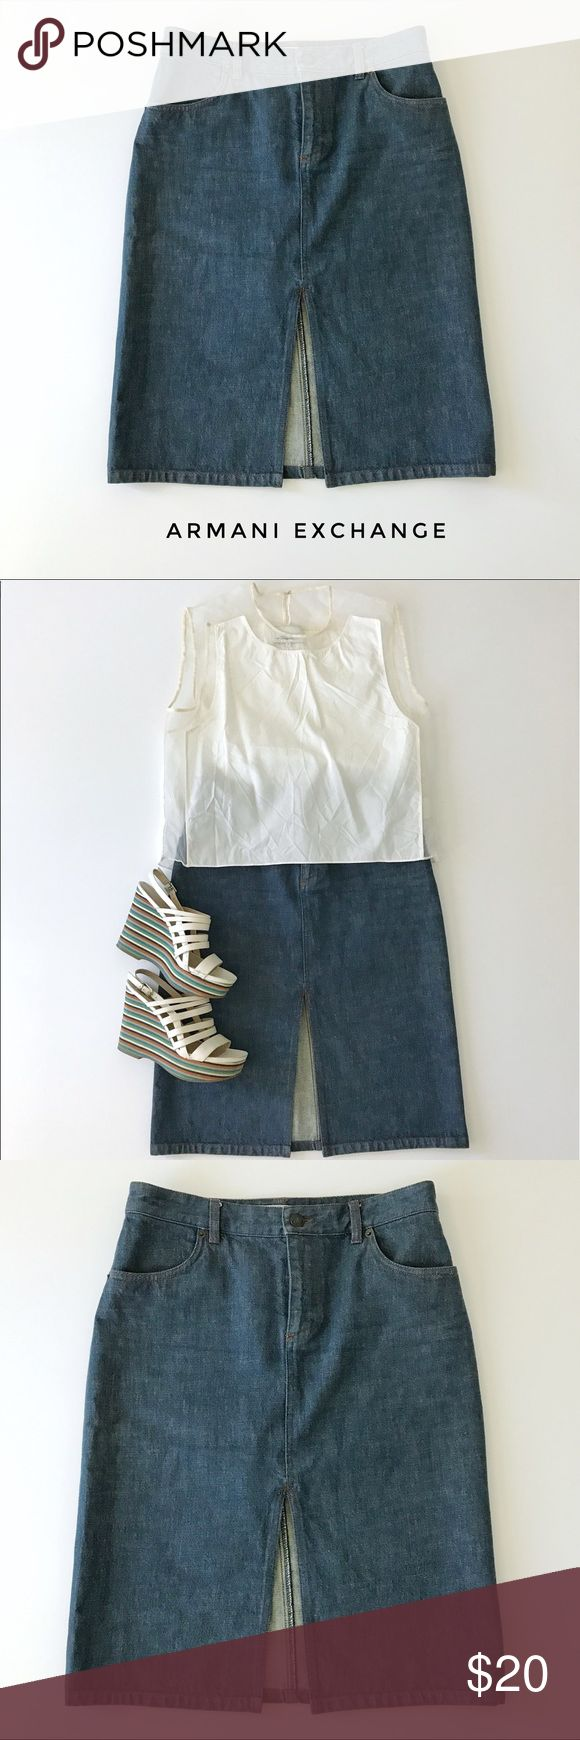 """Armani Exchange denim skirt, size 4 Blue denim pencil skirt with slit in front from Armani Exchange. Tailored fit, knee-length, classic casual style.  🍈 Size 4 - waist 30"""", hips 36"""", length 24"""" 🍈 Condition: excellent (worn once) 🍈 Material: 100% cotton A/X Armani Exchange Skirts Pencil"""